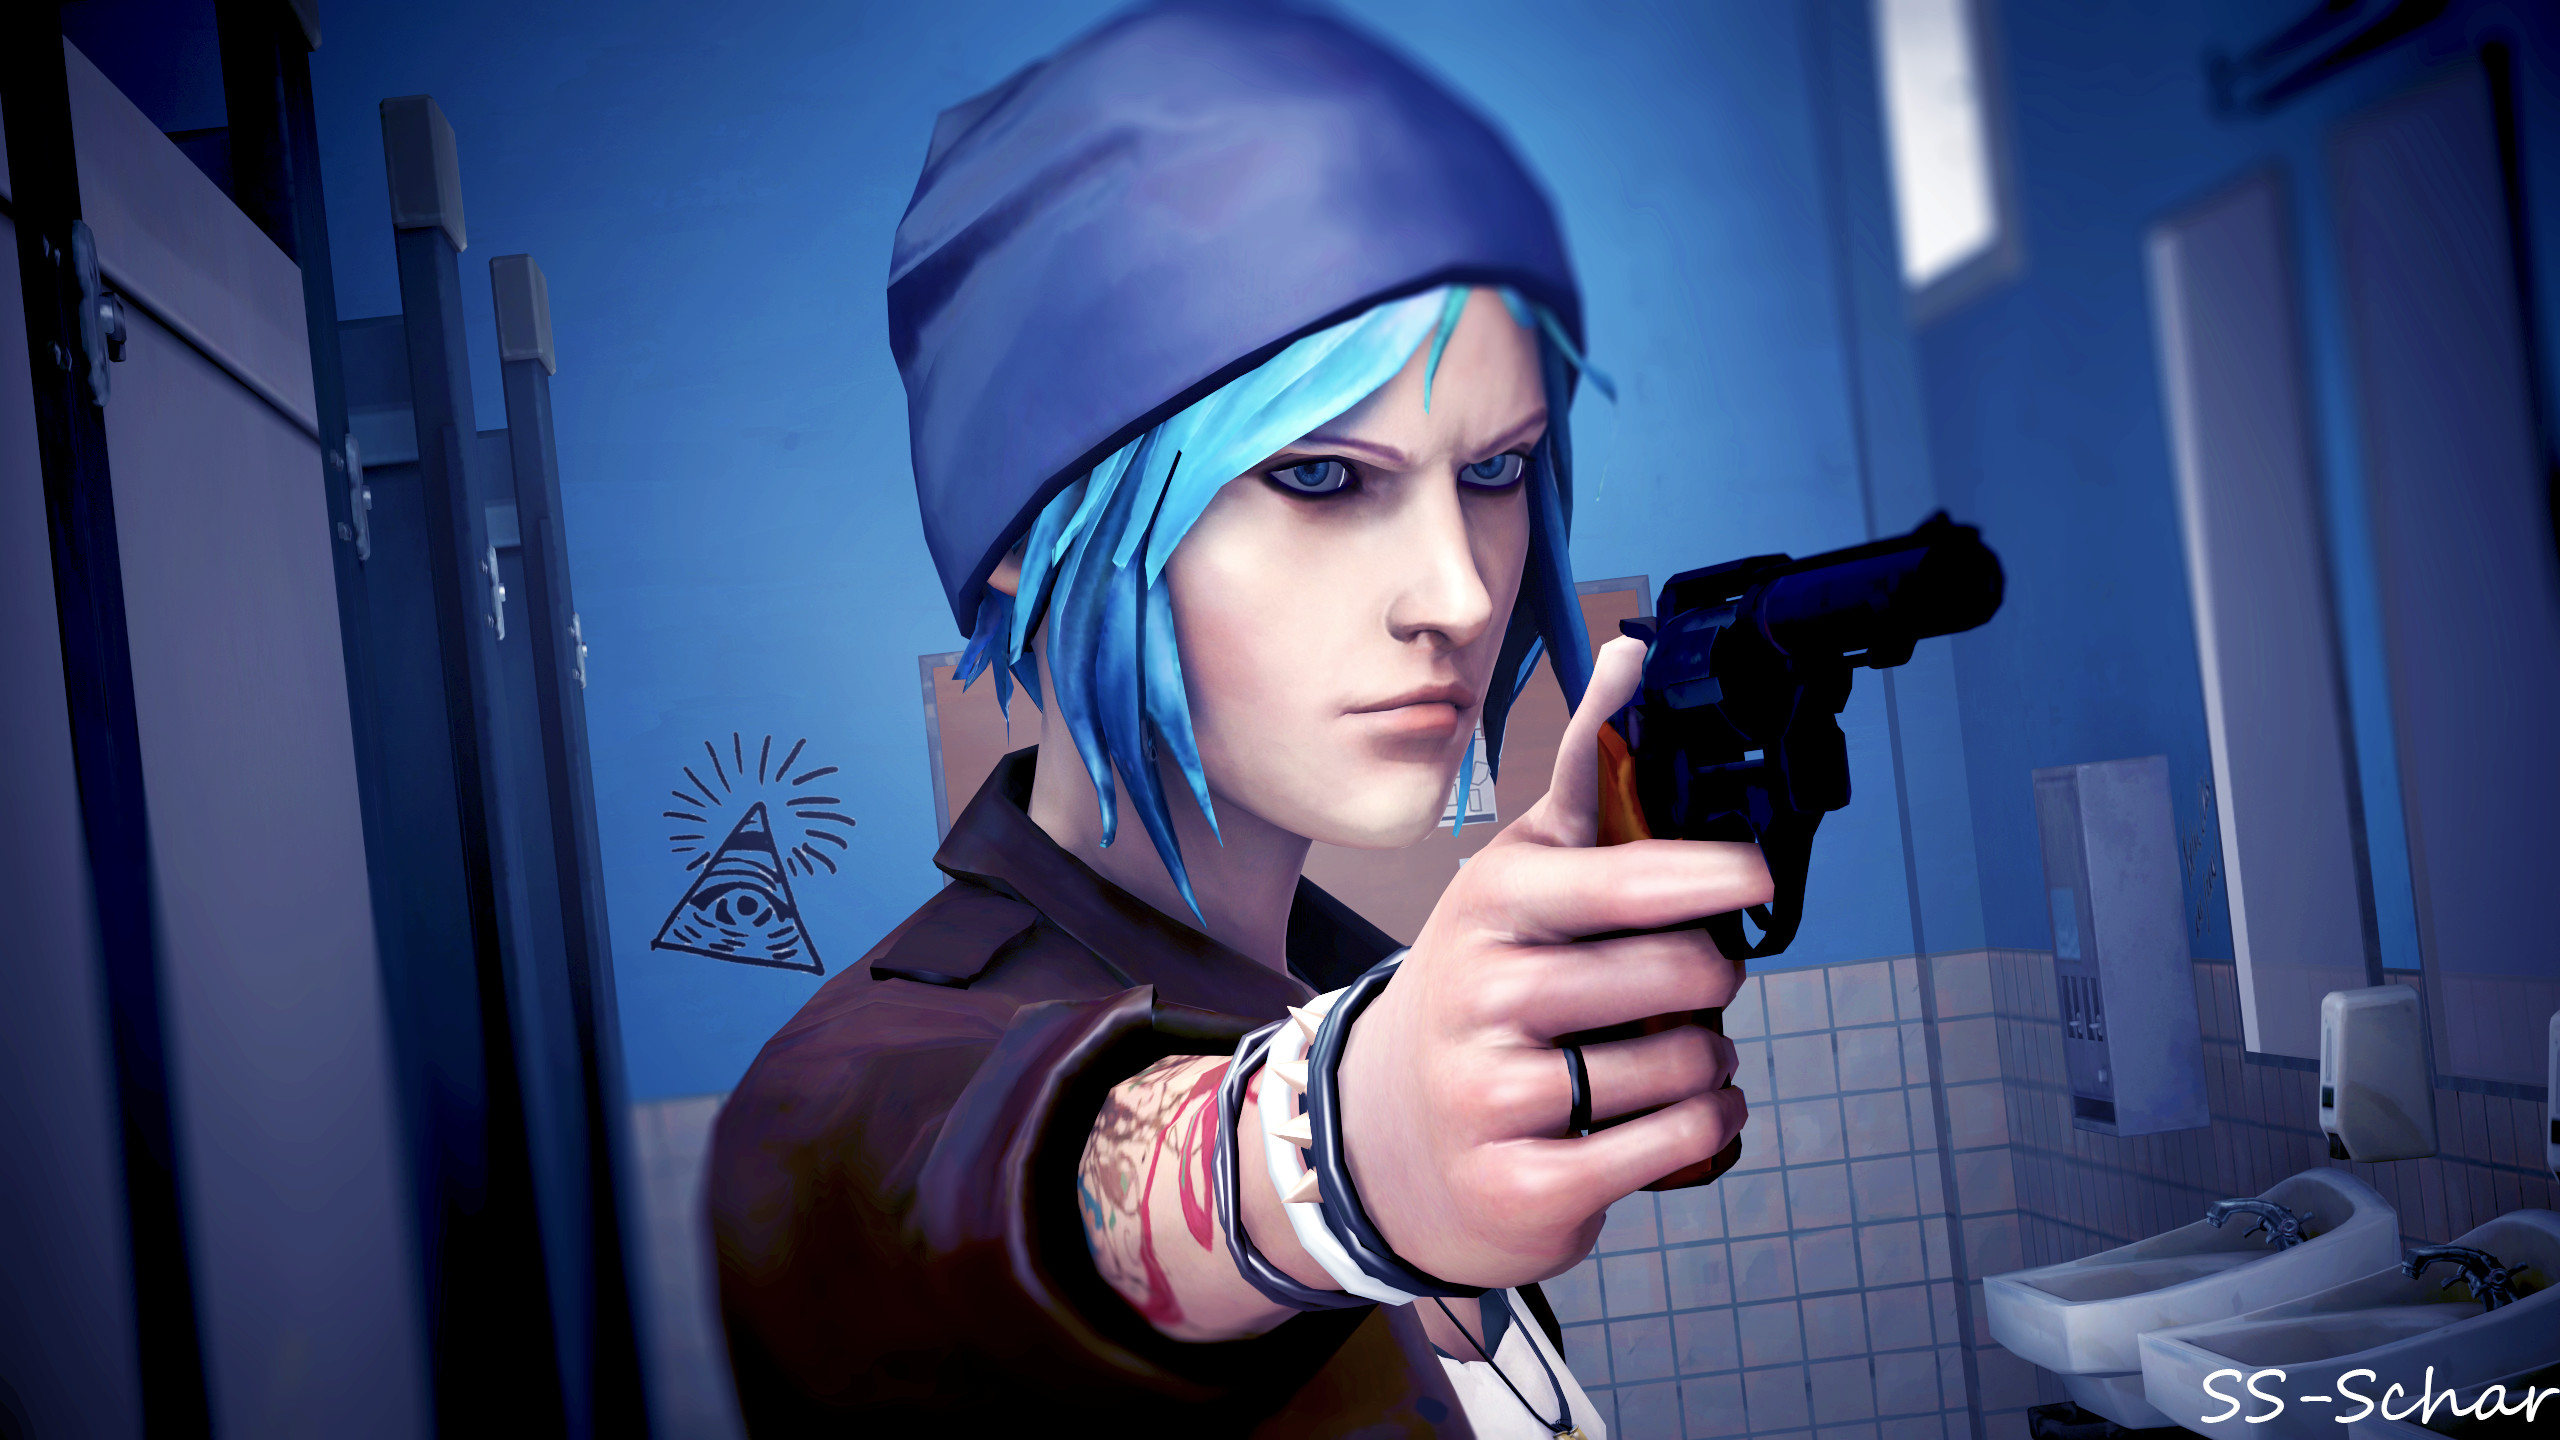 Res: 2560x1440, ... Life Is Strange ~ Chloe Price by SSchar